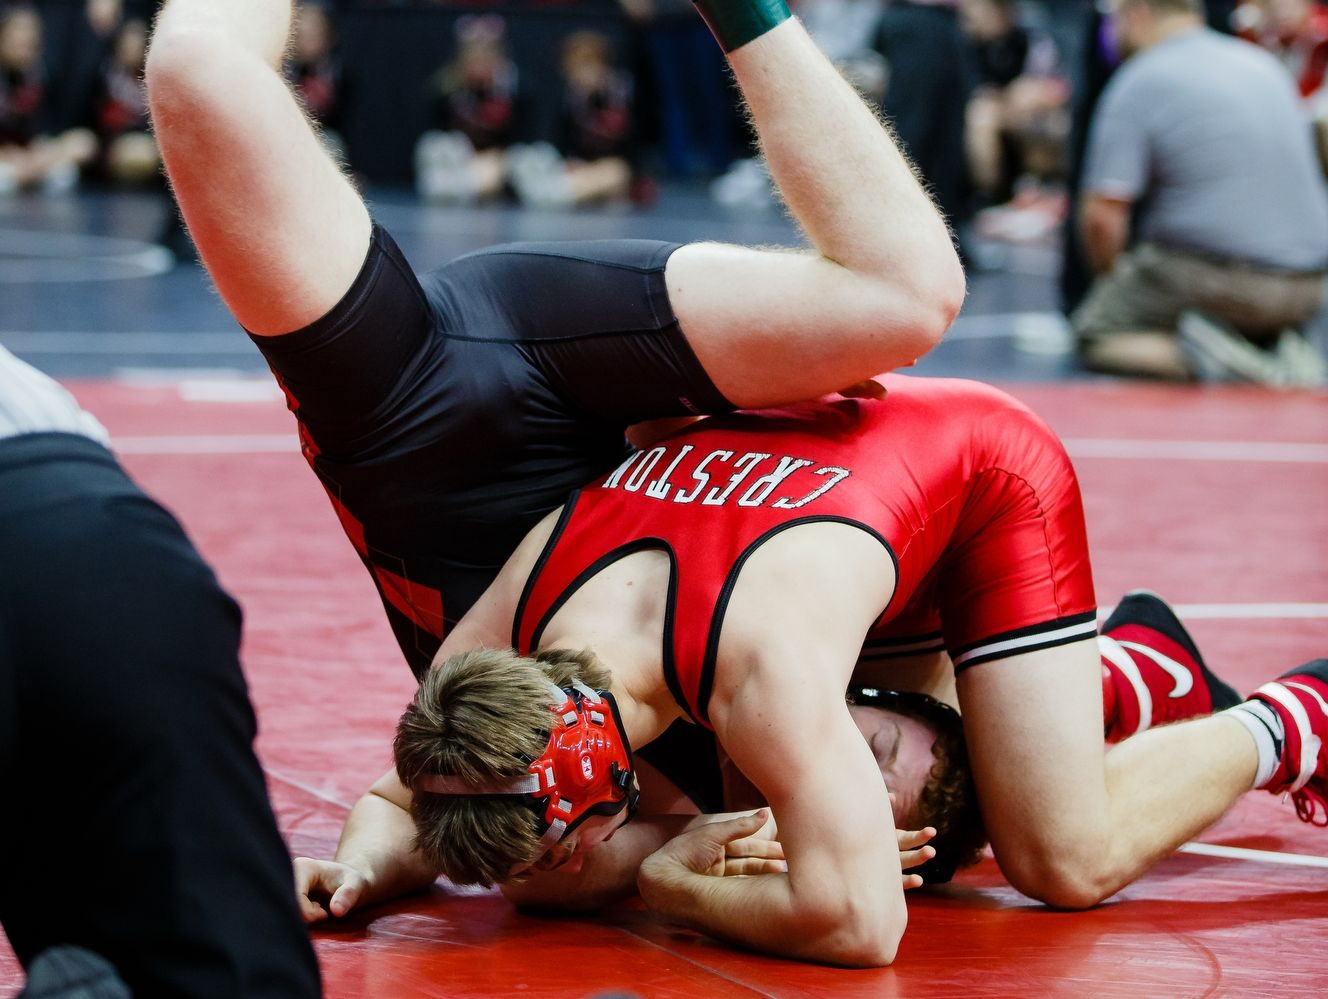 during their match at the Wrestling State Team Dual tournament on Wednesday, Feb. 15, 2017 in Des Moines.